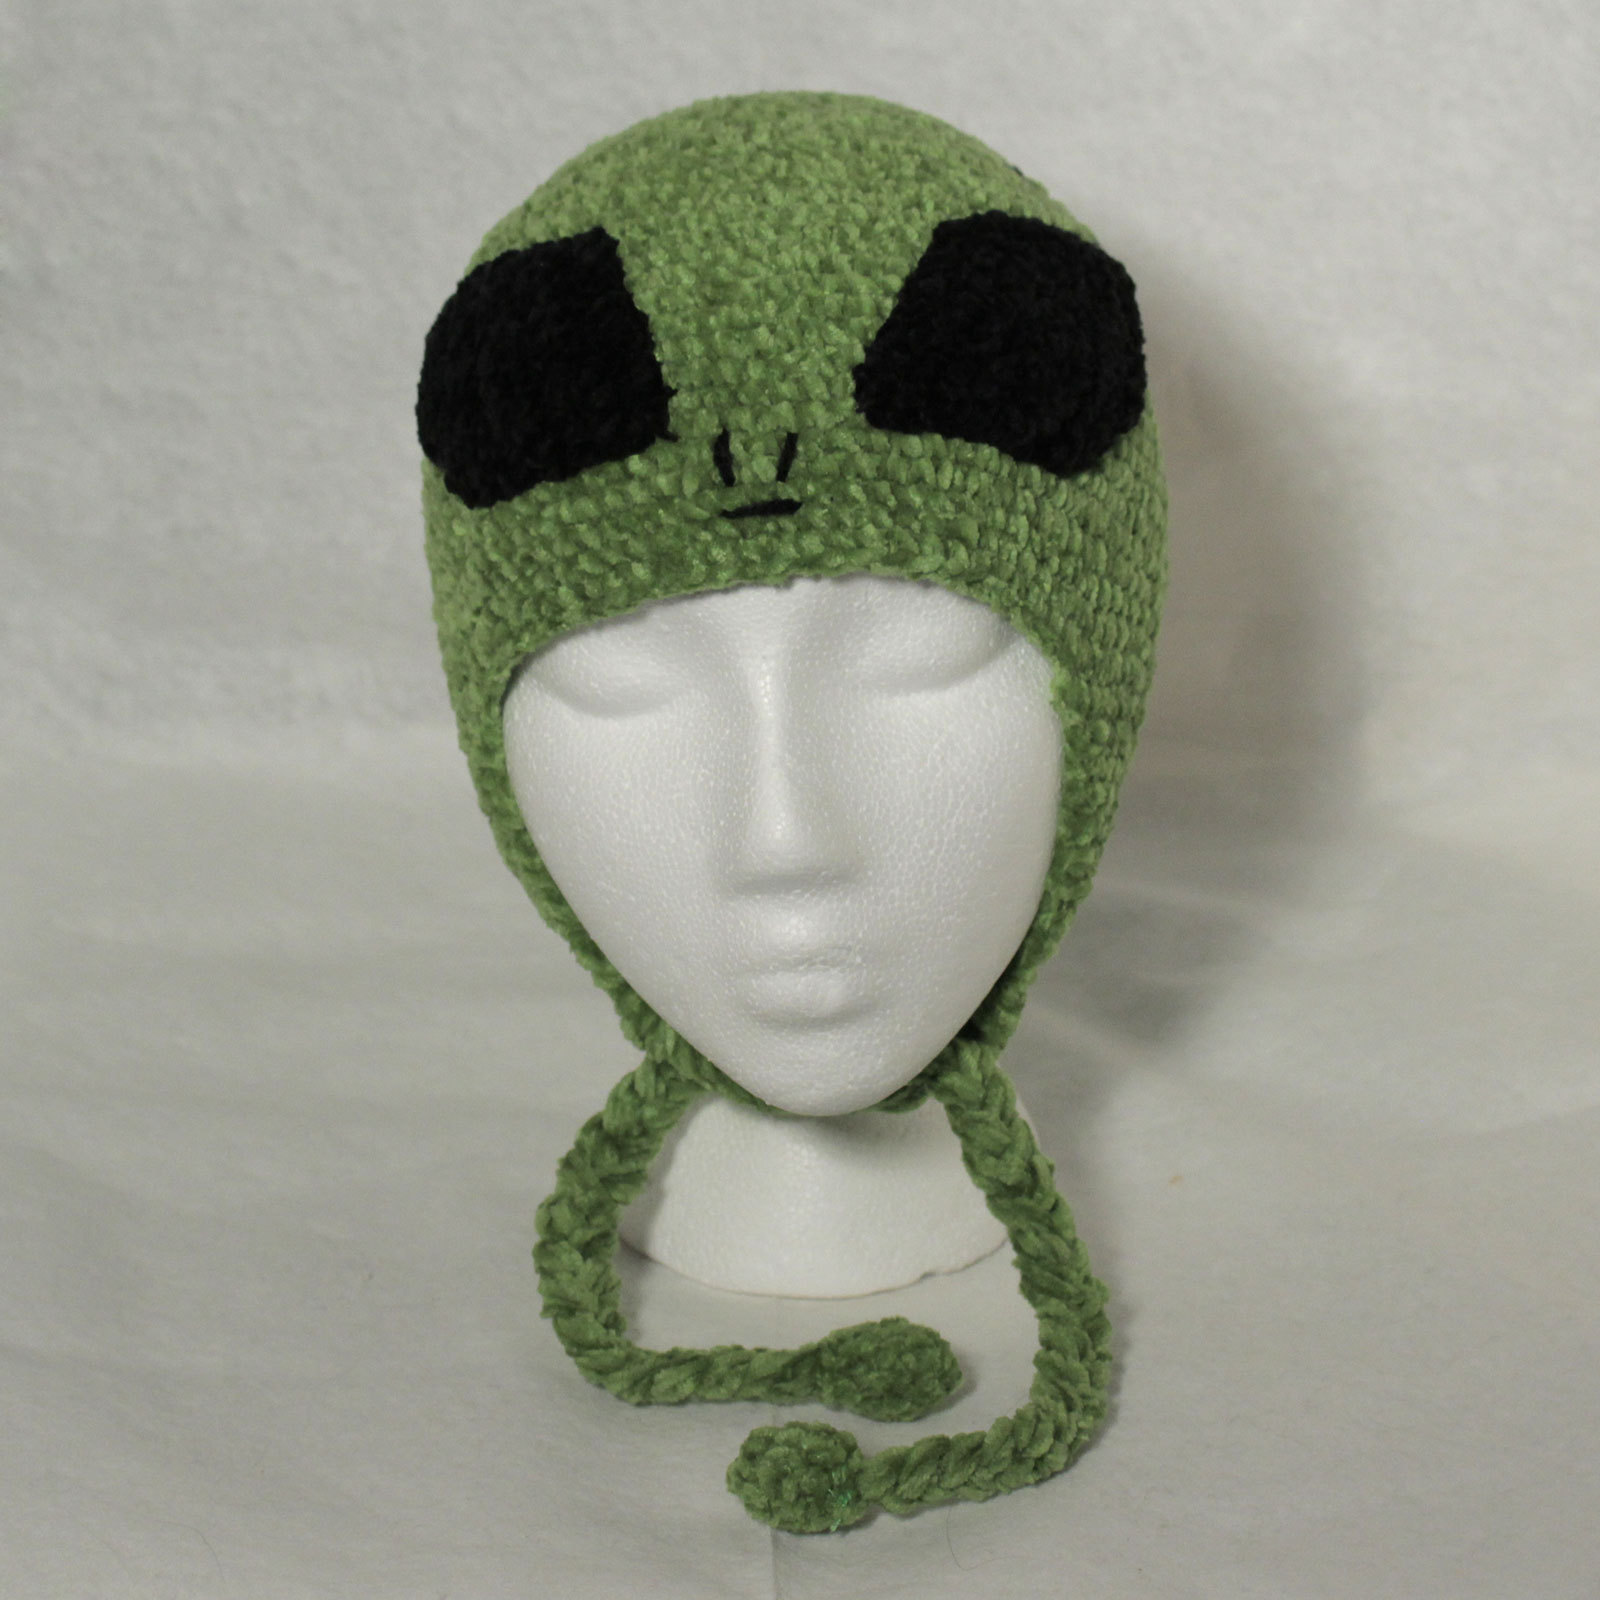 Primary image for Alien Hat w/Ties for Children - Novelty Hats - Medium